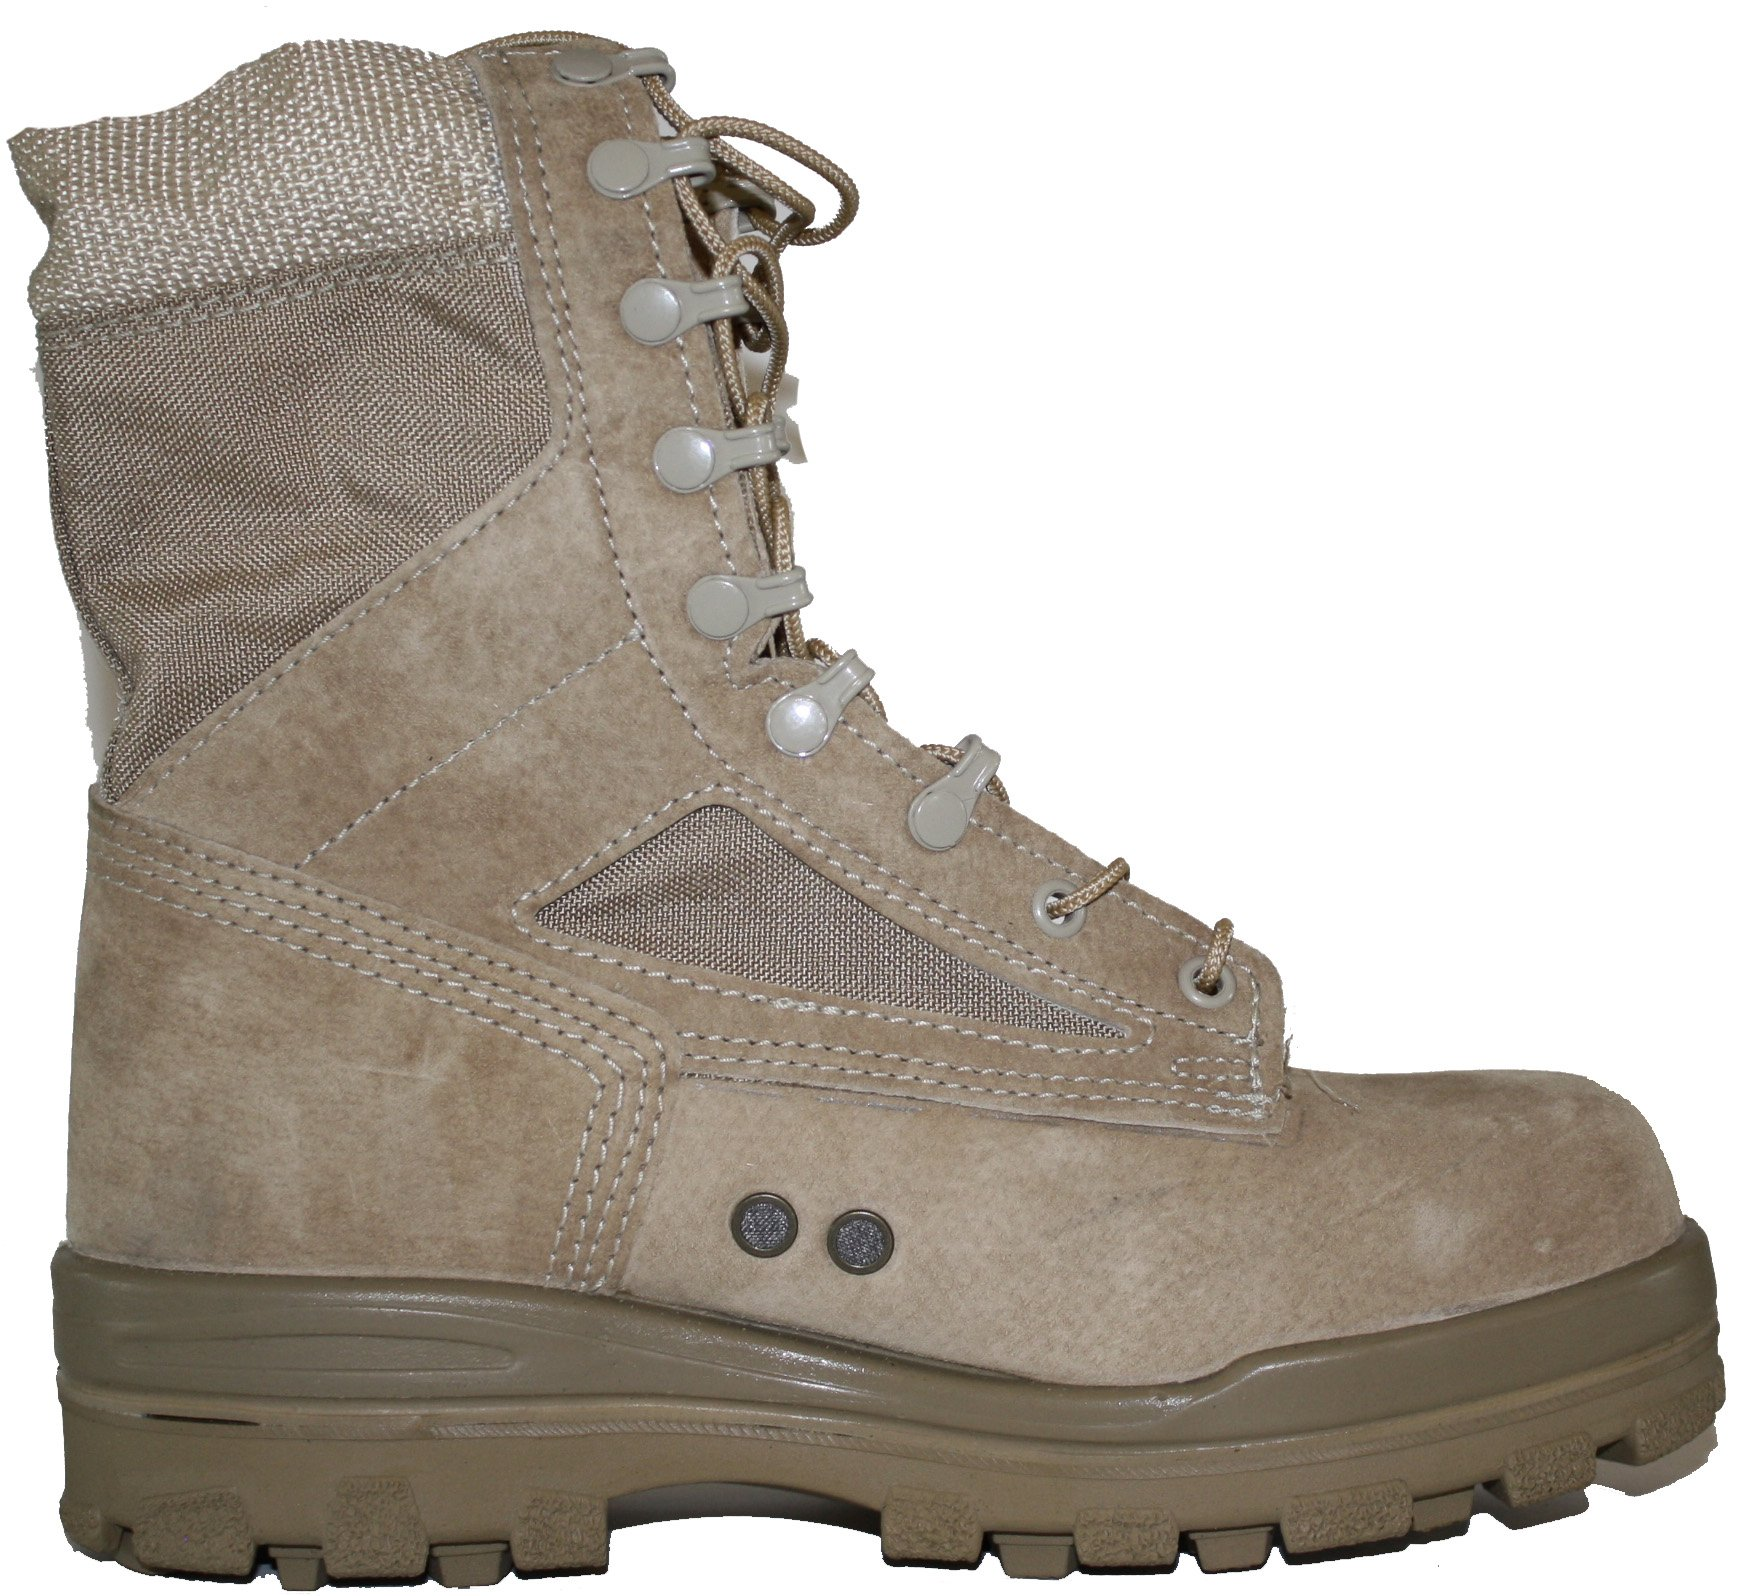 Bates Women's 8 Inches Durashocks Steel Toe Boot,Desert Sand,10 M US by Bates (Image #3)